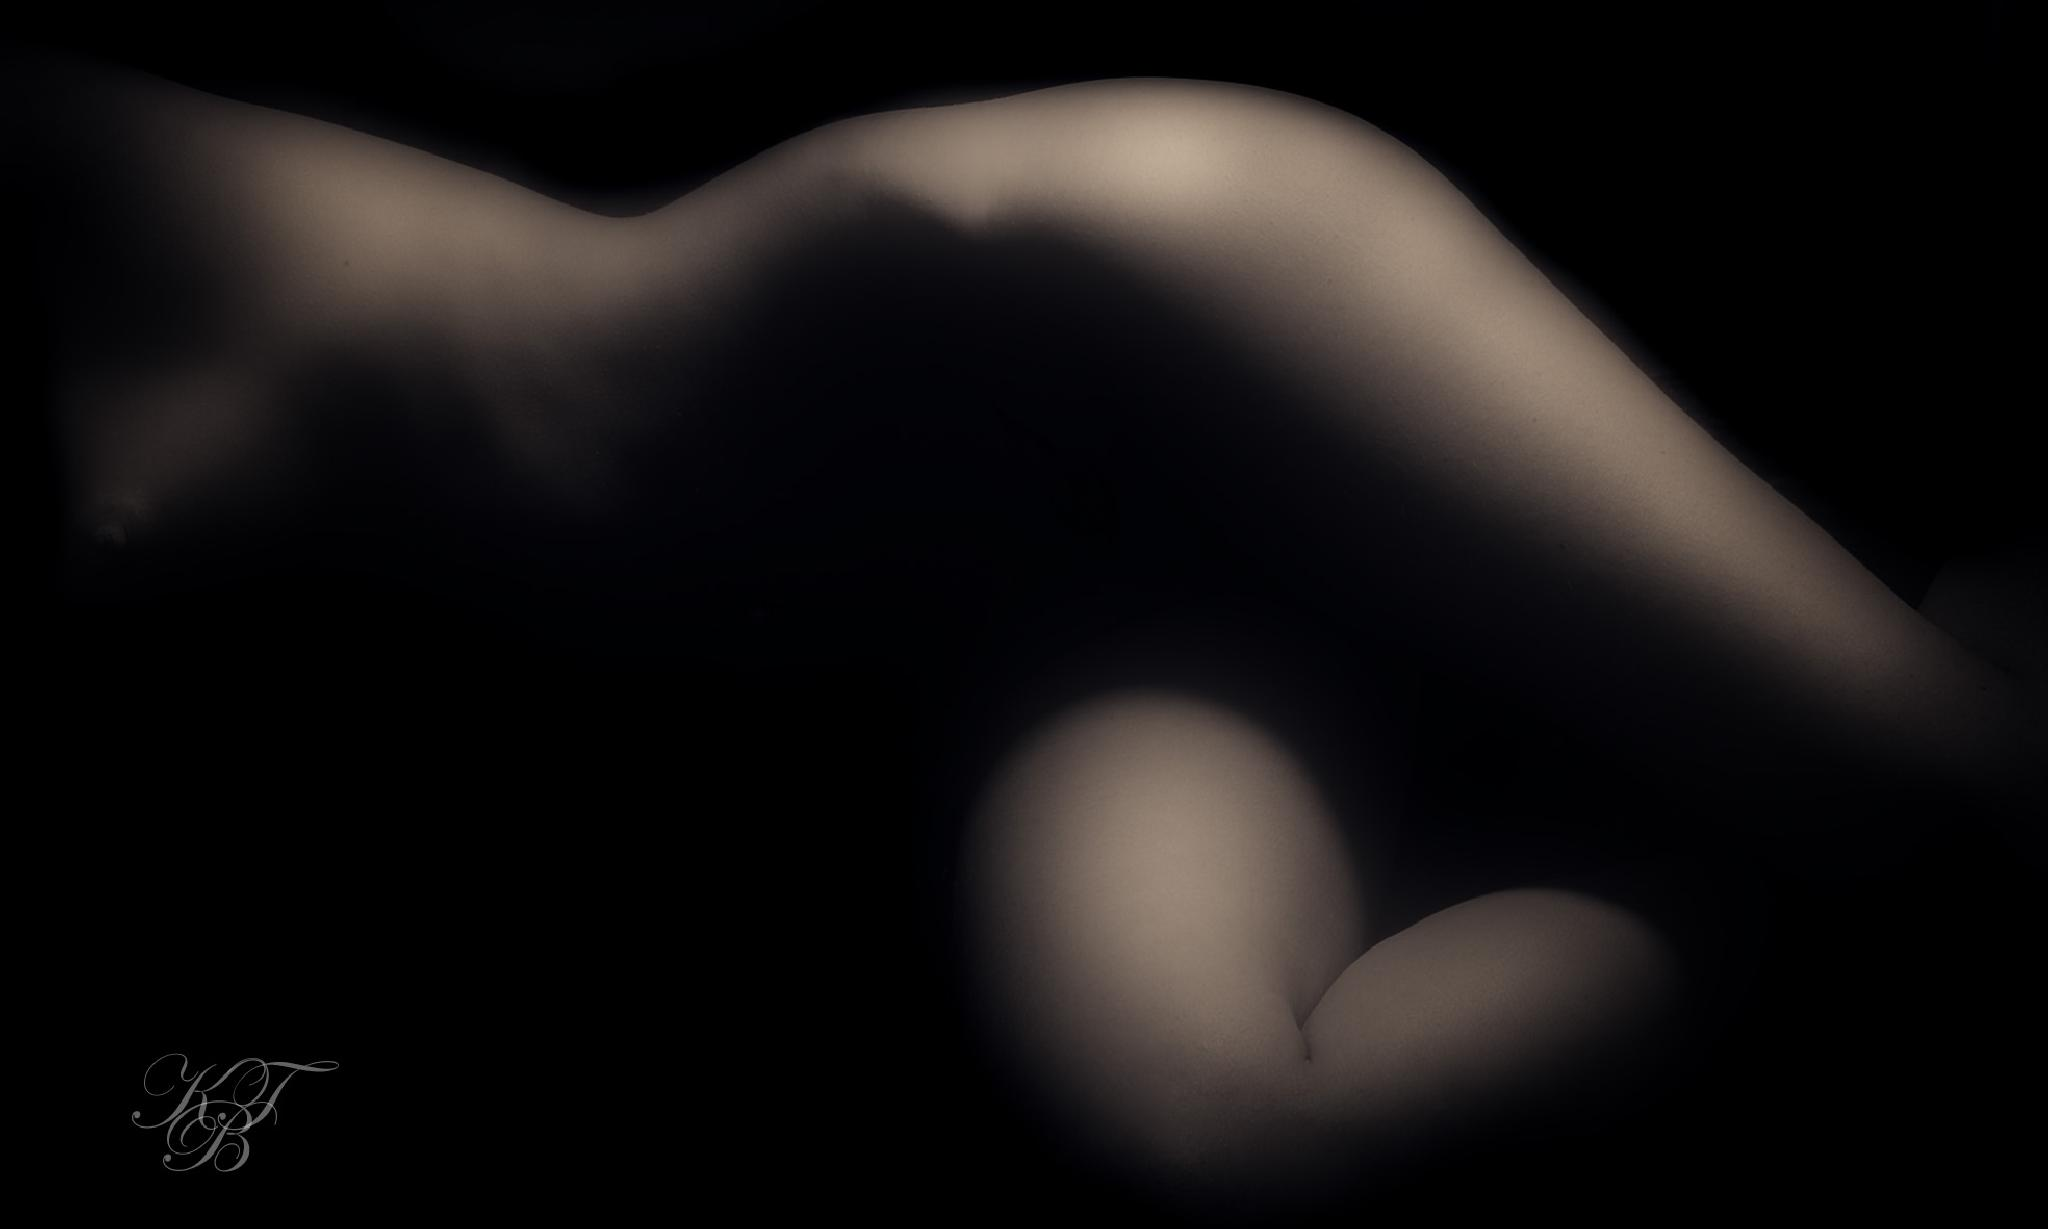 Soft shapes in the dark by Pixforce